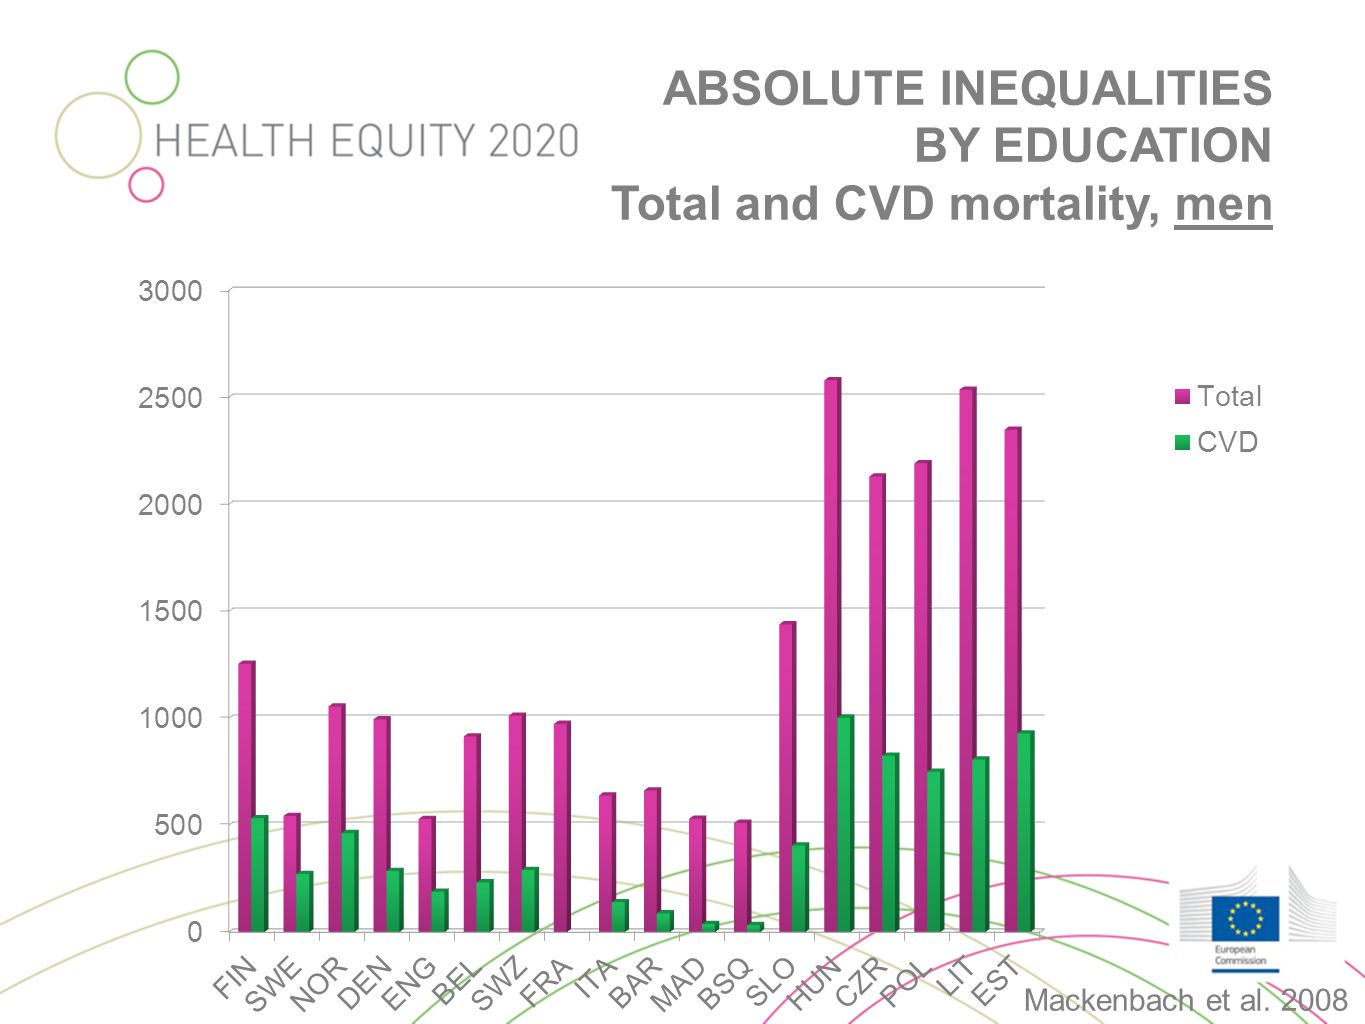 ABSOLUTE INEQUALITIES BY EDUCATION Total and CVD mortality, men Mackenbach et al. 2008